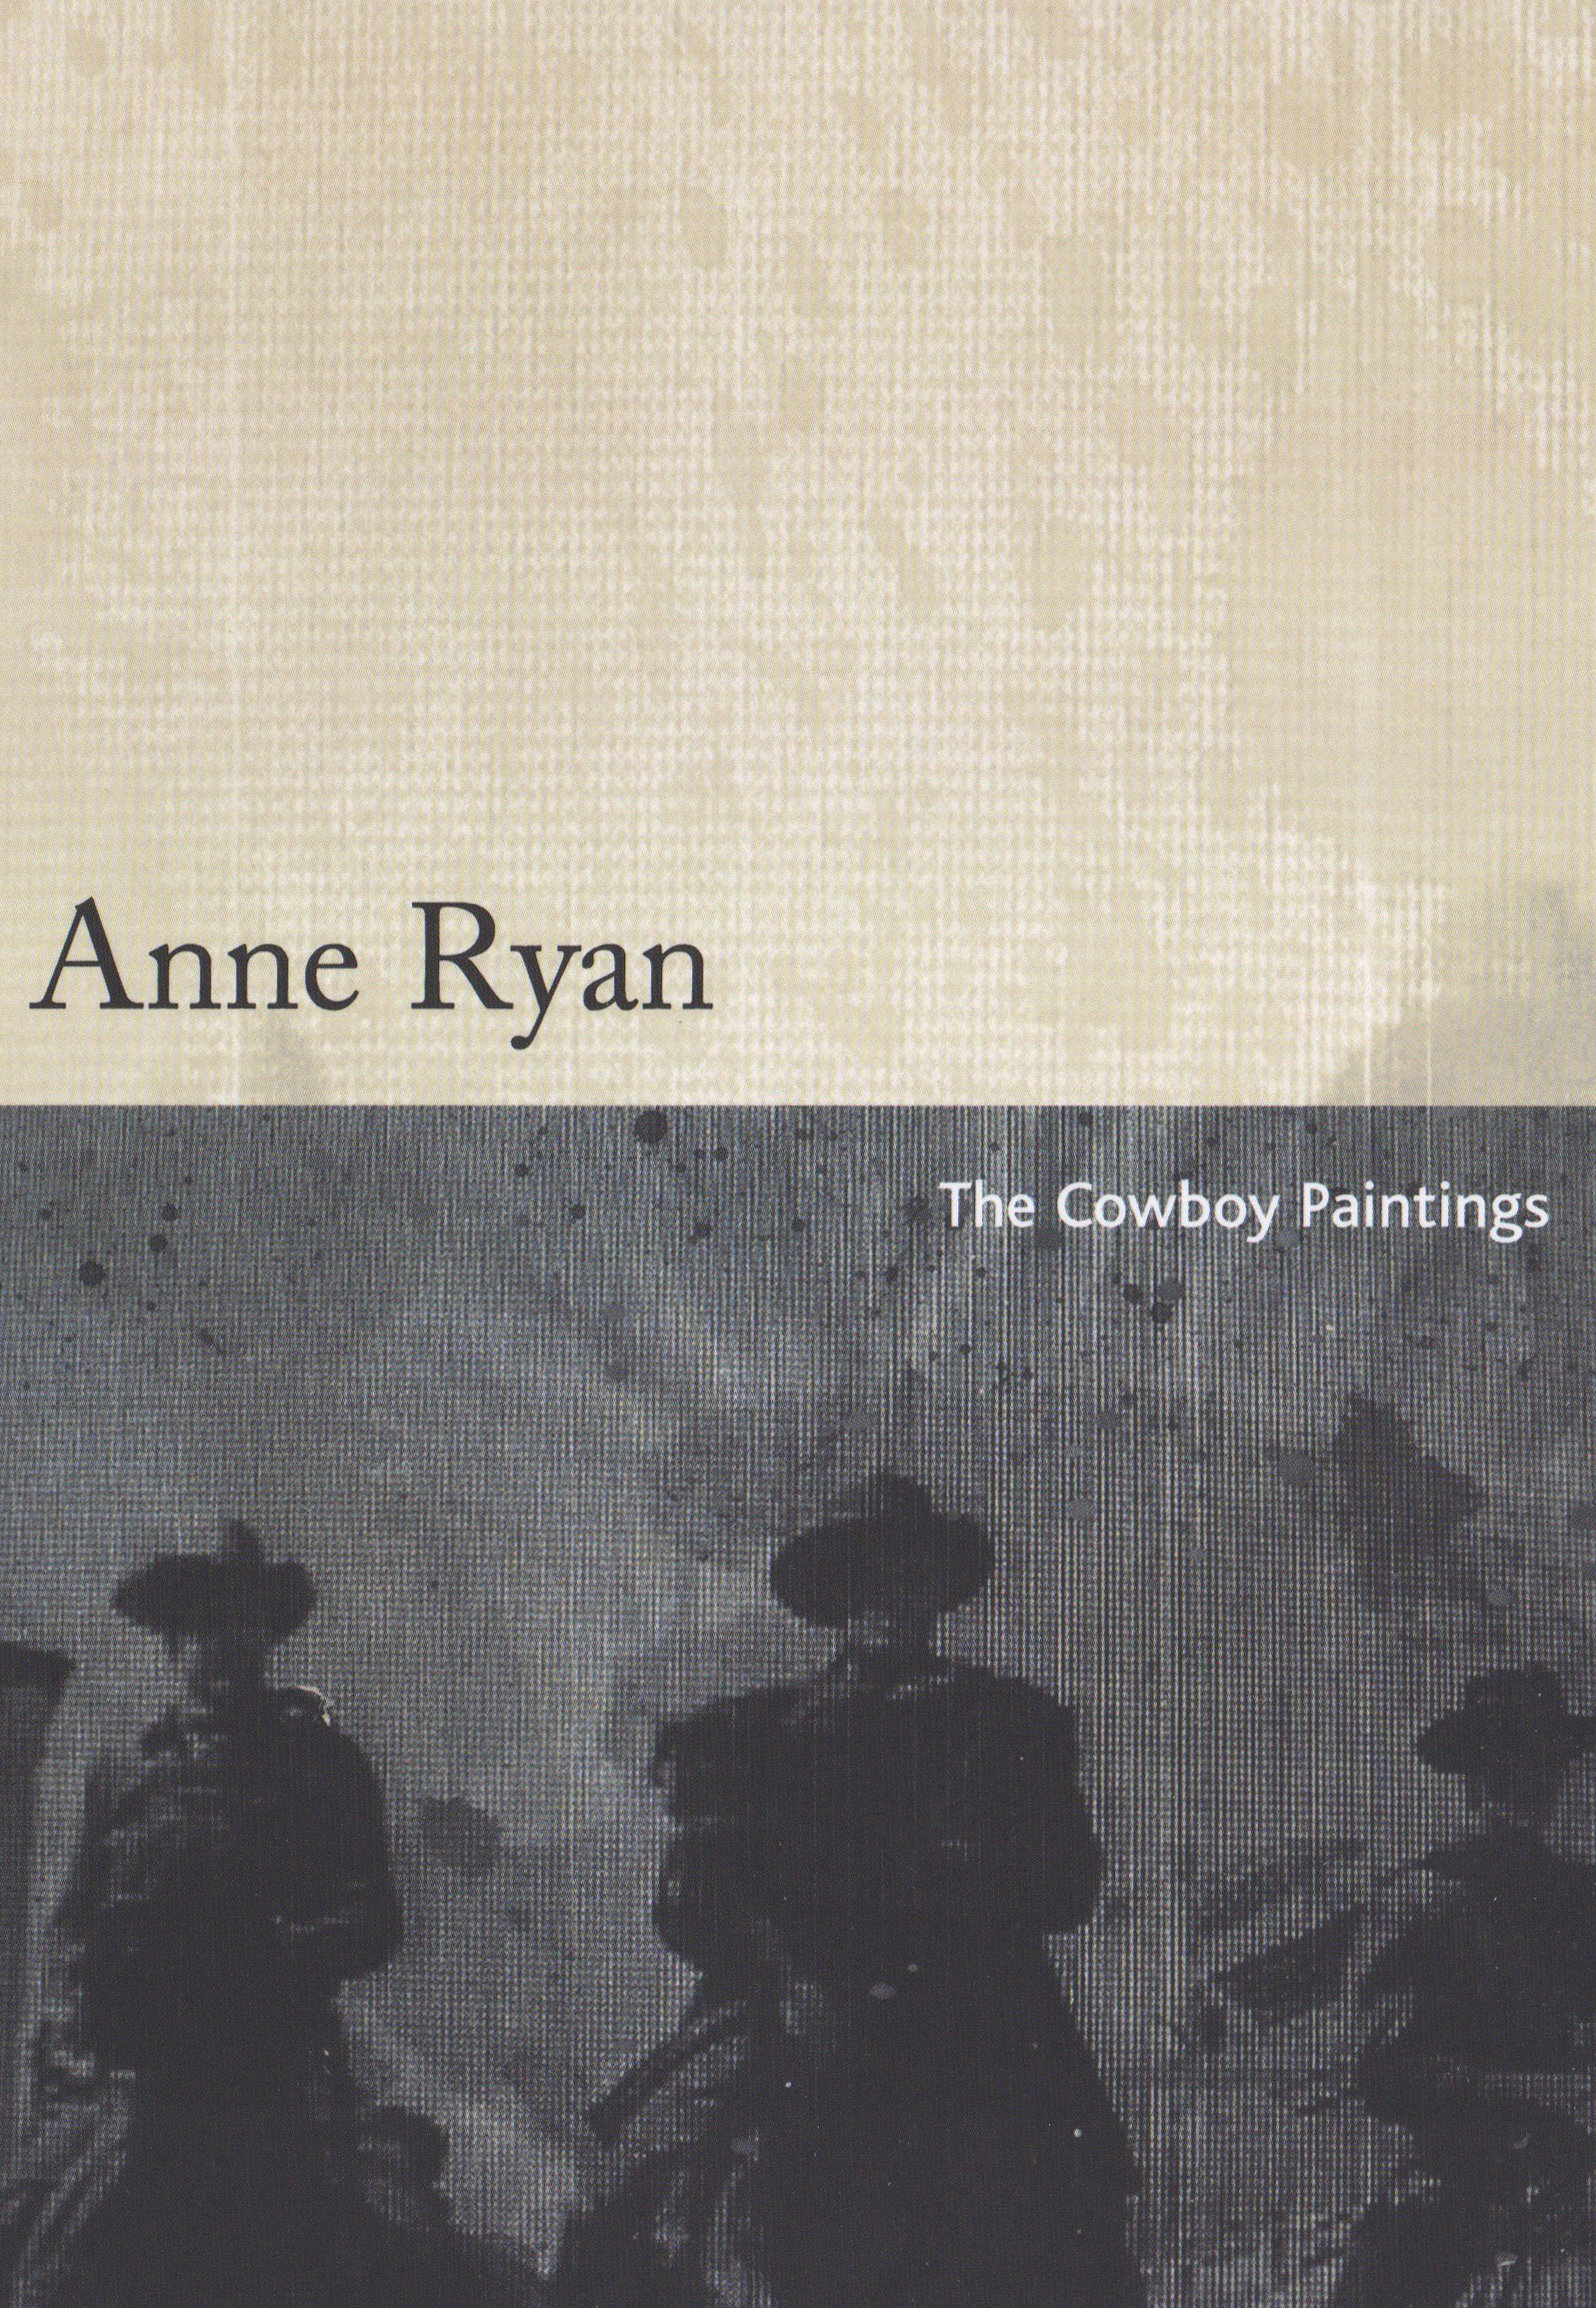 The Cowboy Paintings